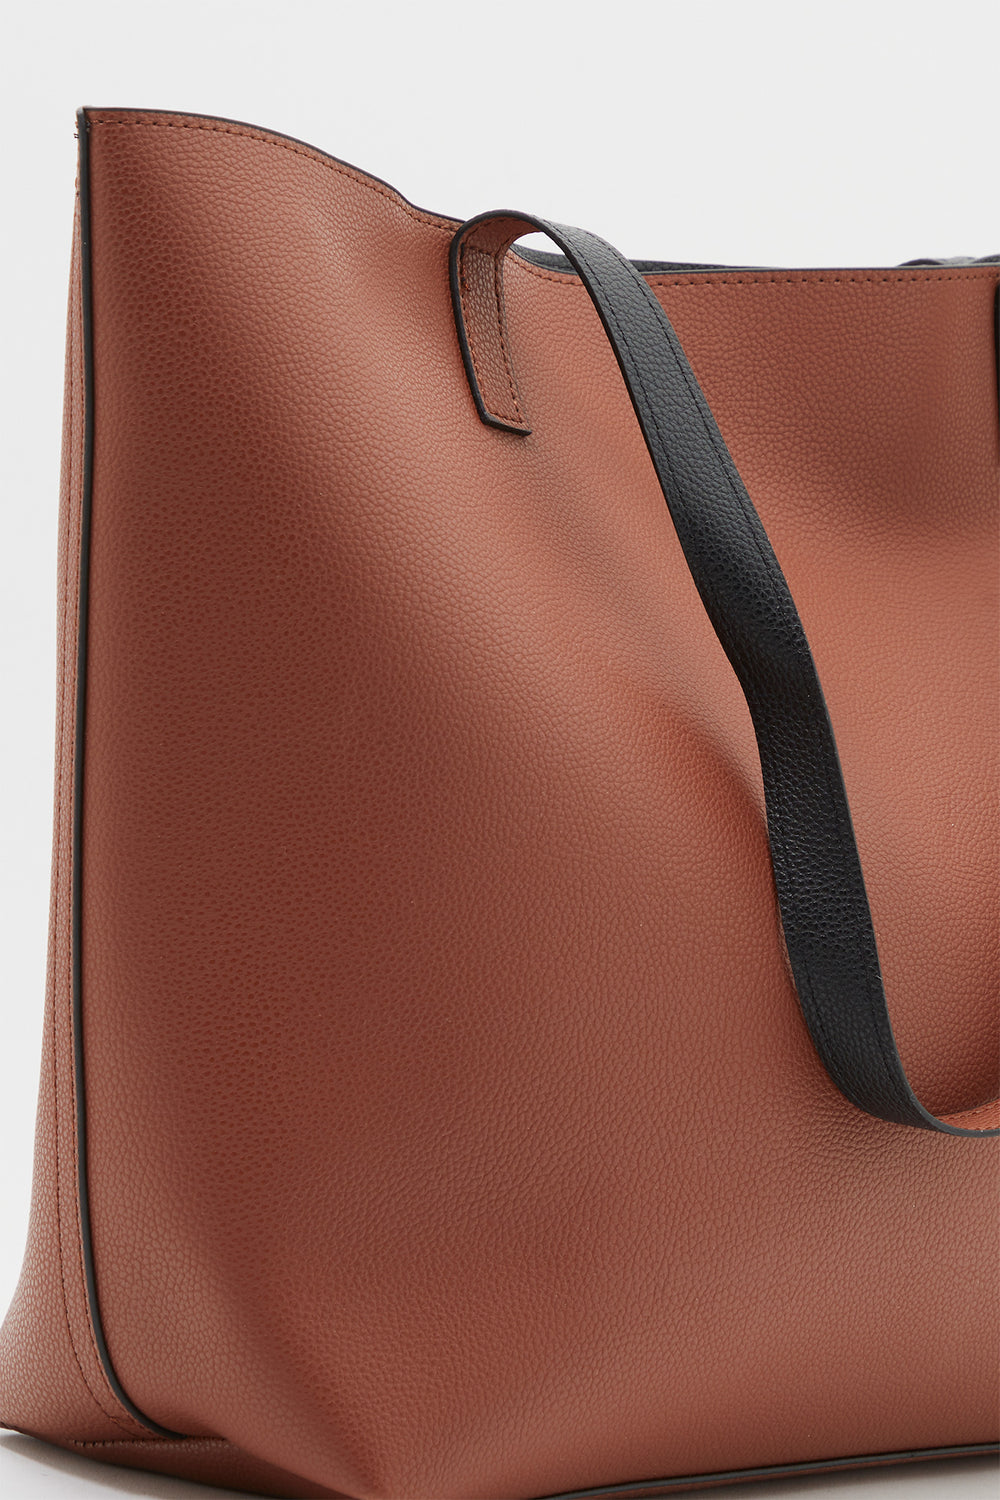 Reversible Tote Bag Camel